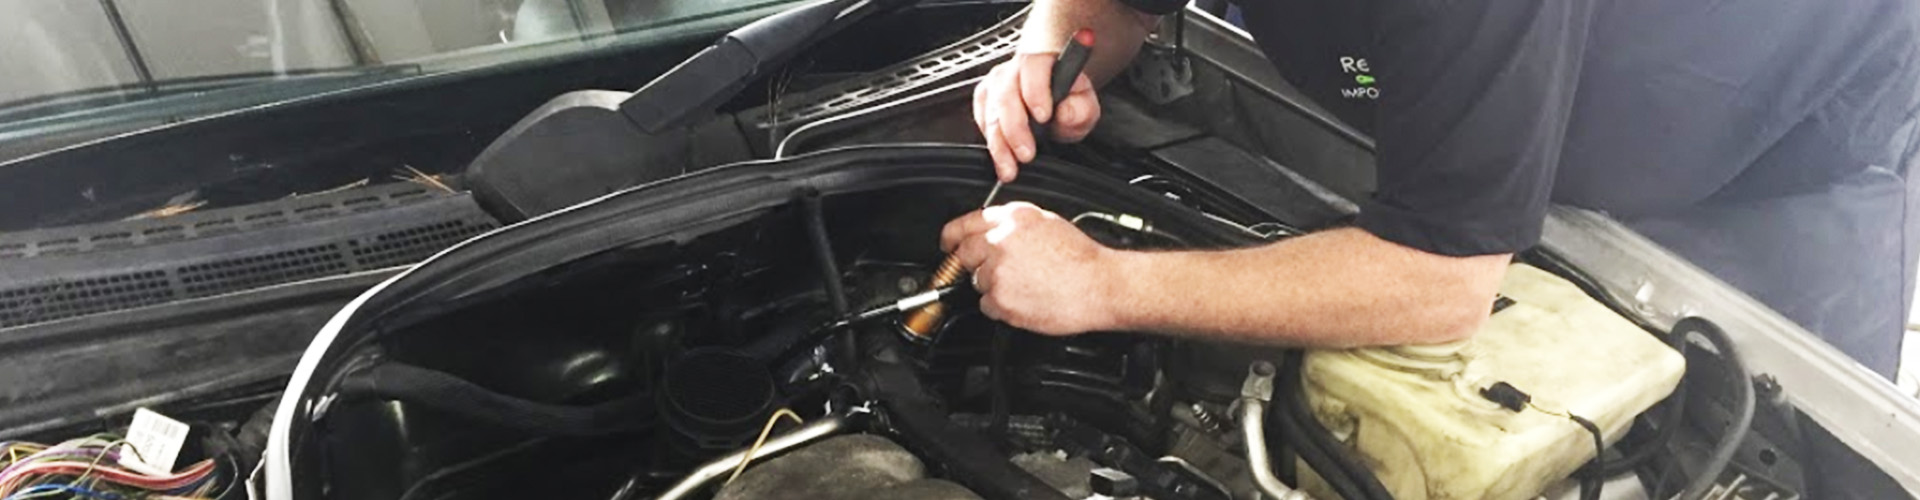 hight resolution of car electrical system repair in raleigh reliable import service auto electrical wiring shops